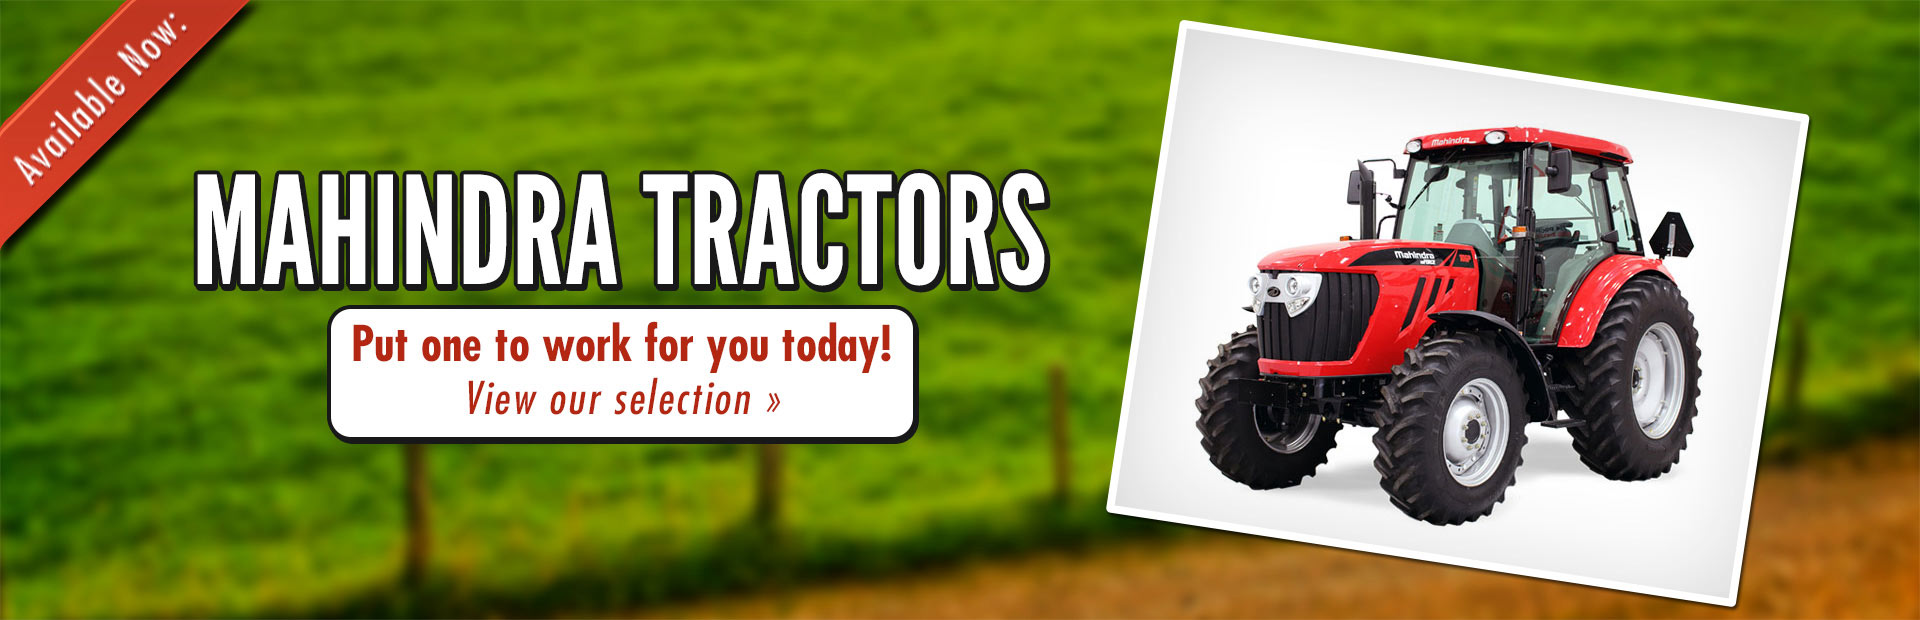 Click here to view our selection of Mahindra tractors.